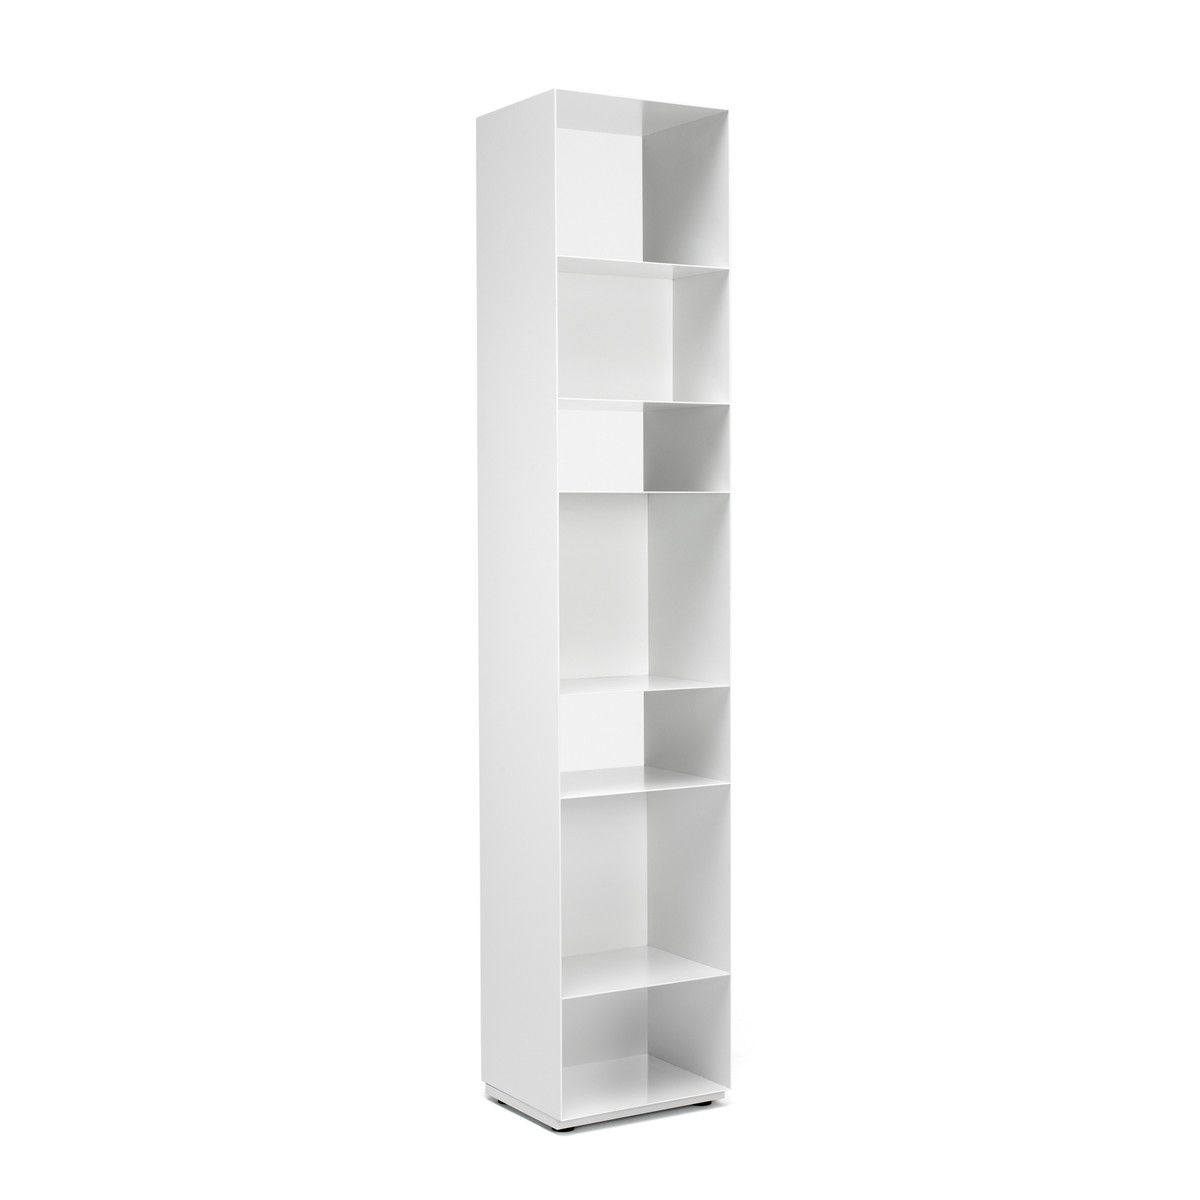 Muller Mobelfabrikation Unit 1 Shelf Vertical White Shelves Shelving Systems The Unit